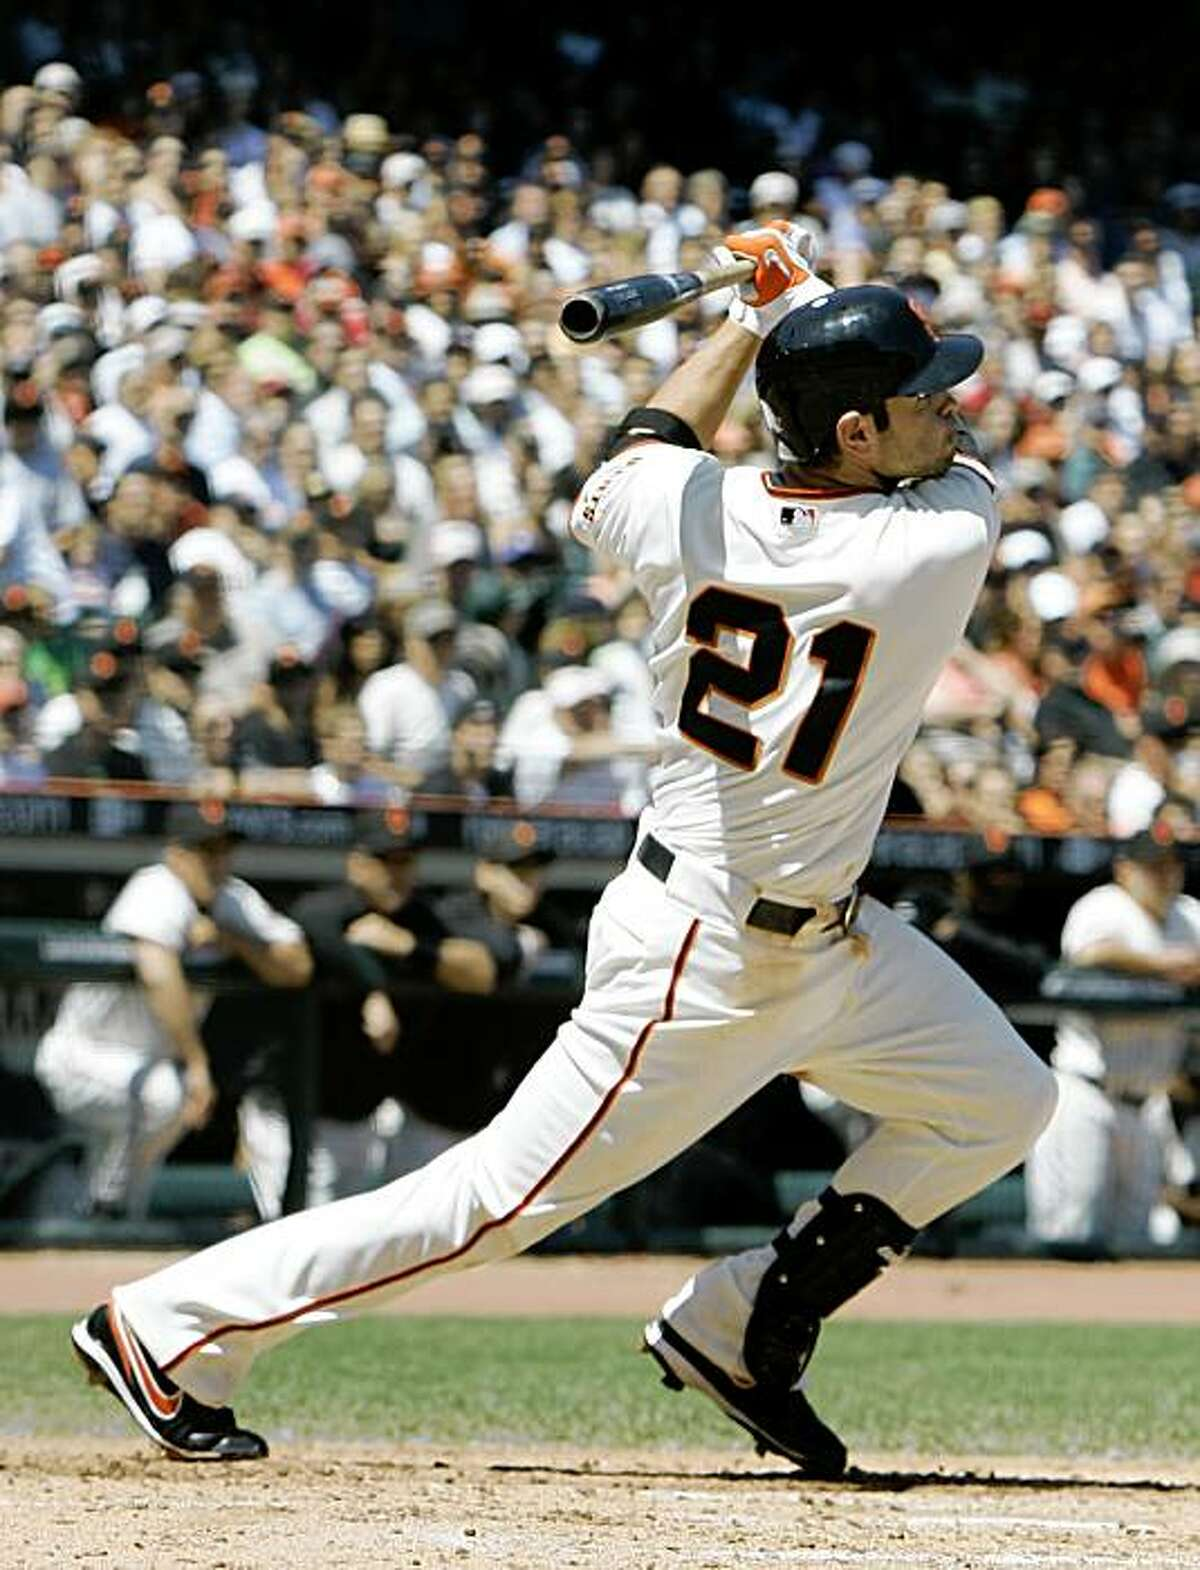 San Francisco Giants' Freddy Sanchez hits a two-RBI double off Philadelphia Phillies starting pitcher Cole Hamels during the fifth inning of a baseball game in San Francisco, Sunday, Aug. 2, 2009. (AP Photo/Eric Risberg)